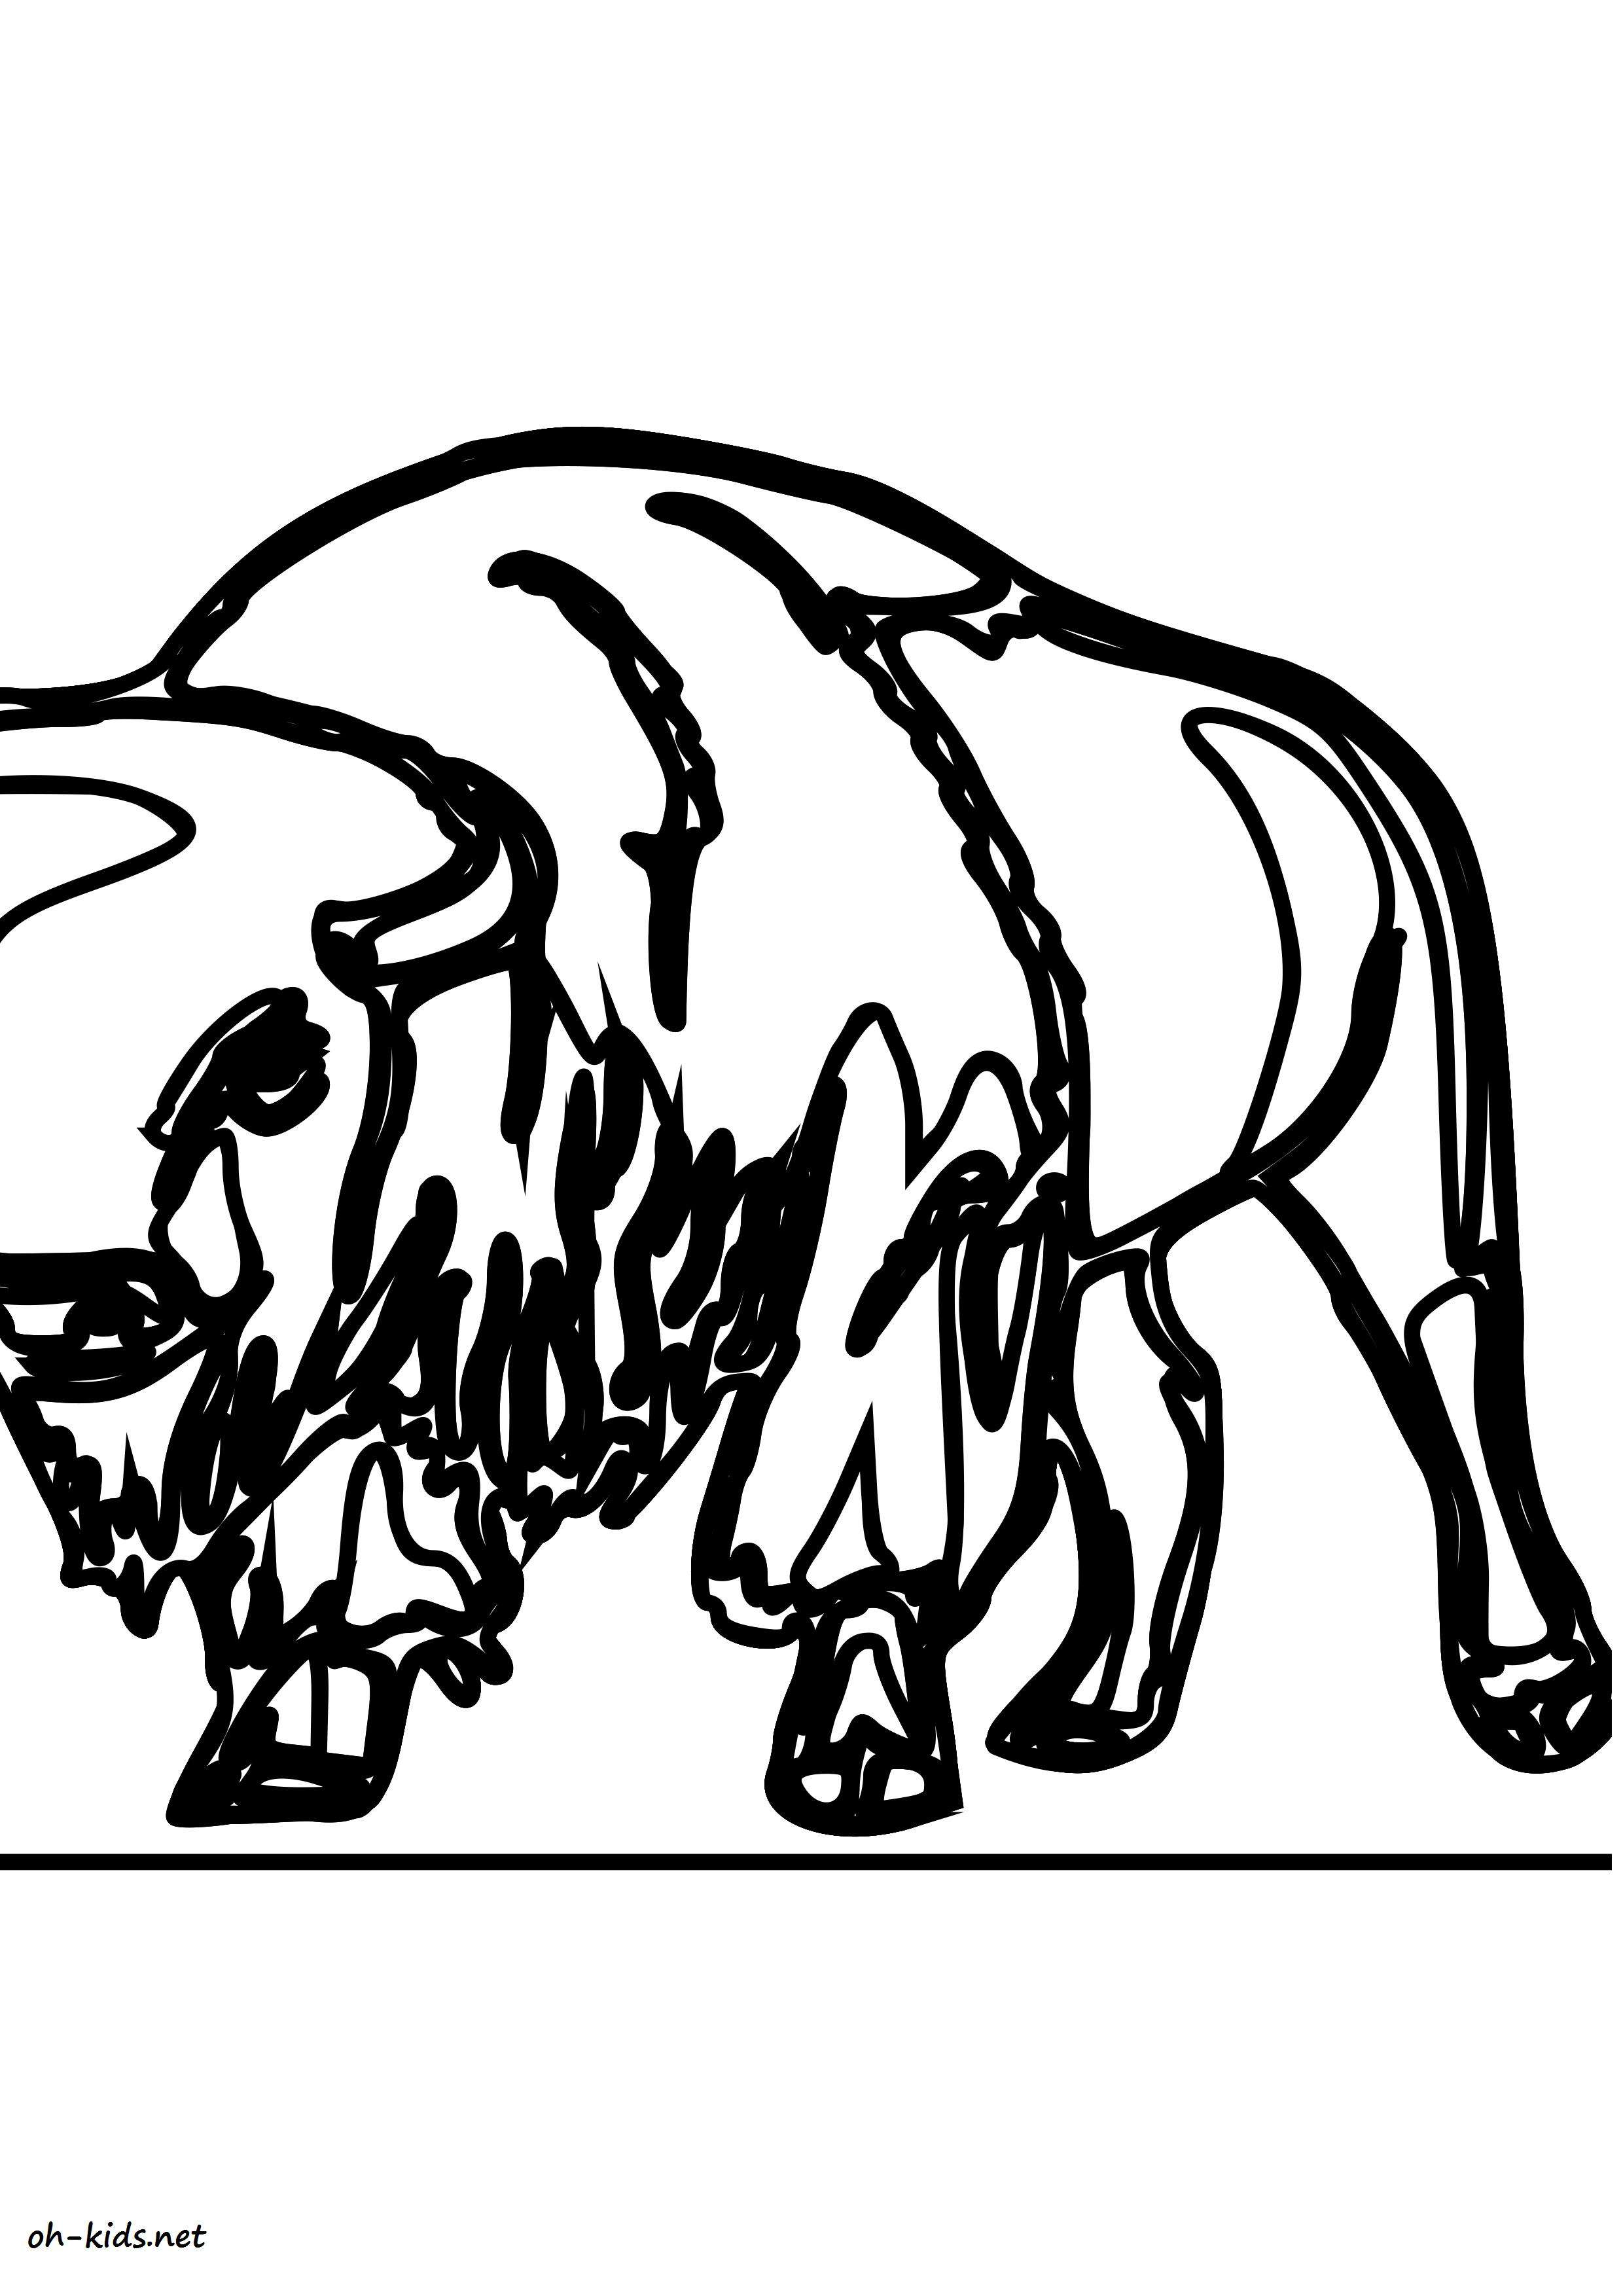 Coloriage animaux page 31 of 84 oh kids fr - Coloriage bison ...